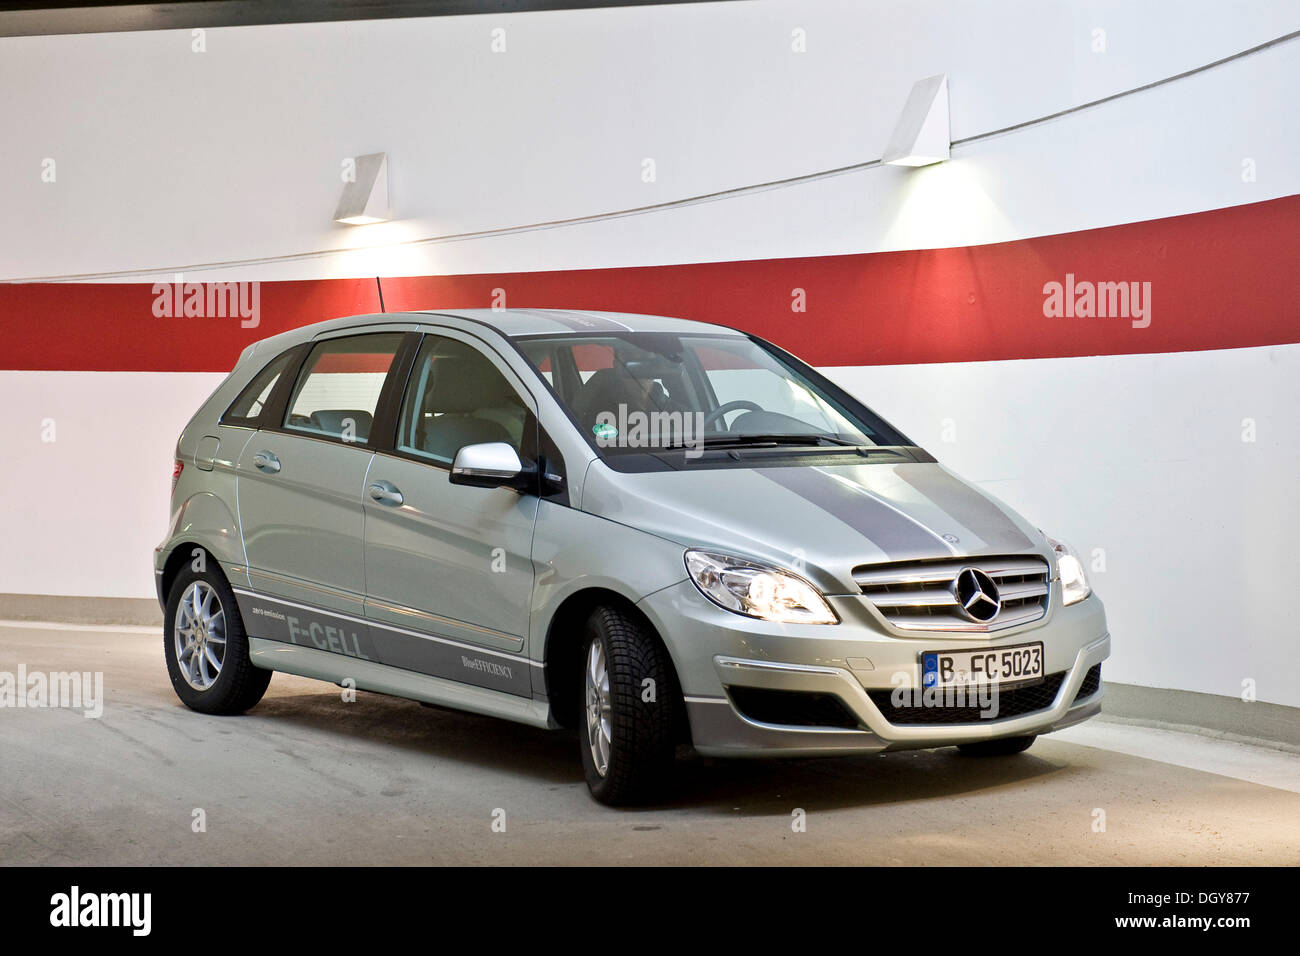 Hydrogen fuel cell vehicle, Mercedes B-class zero-emission, Berlin - Stock Image